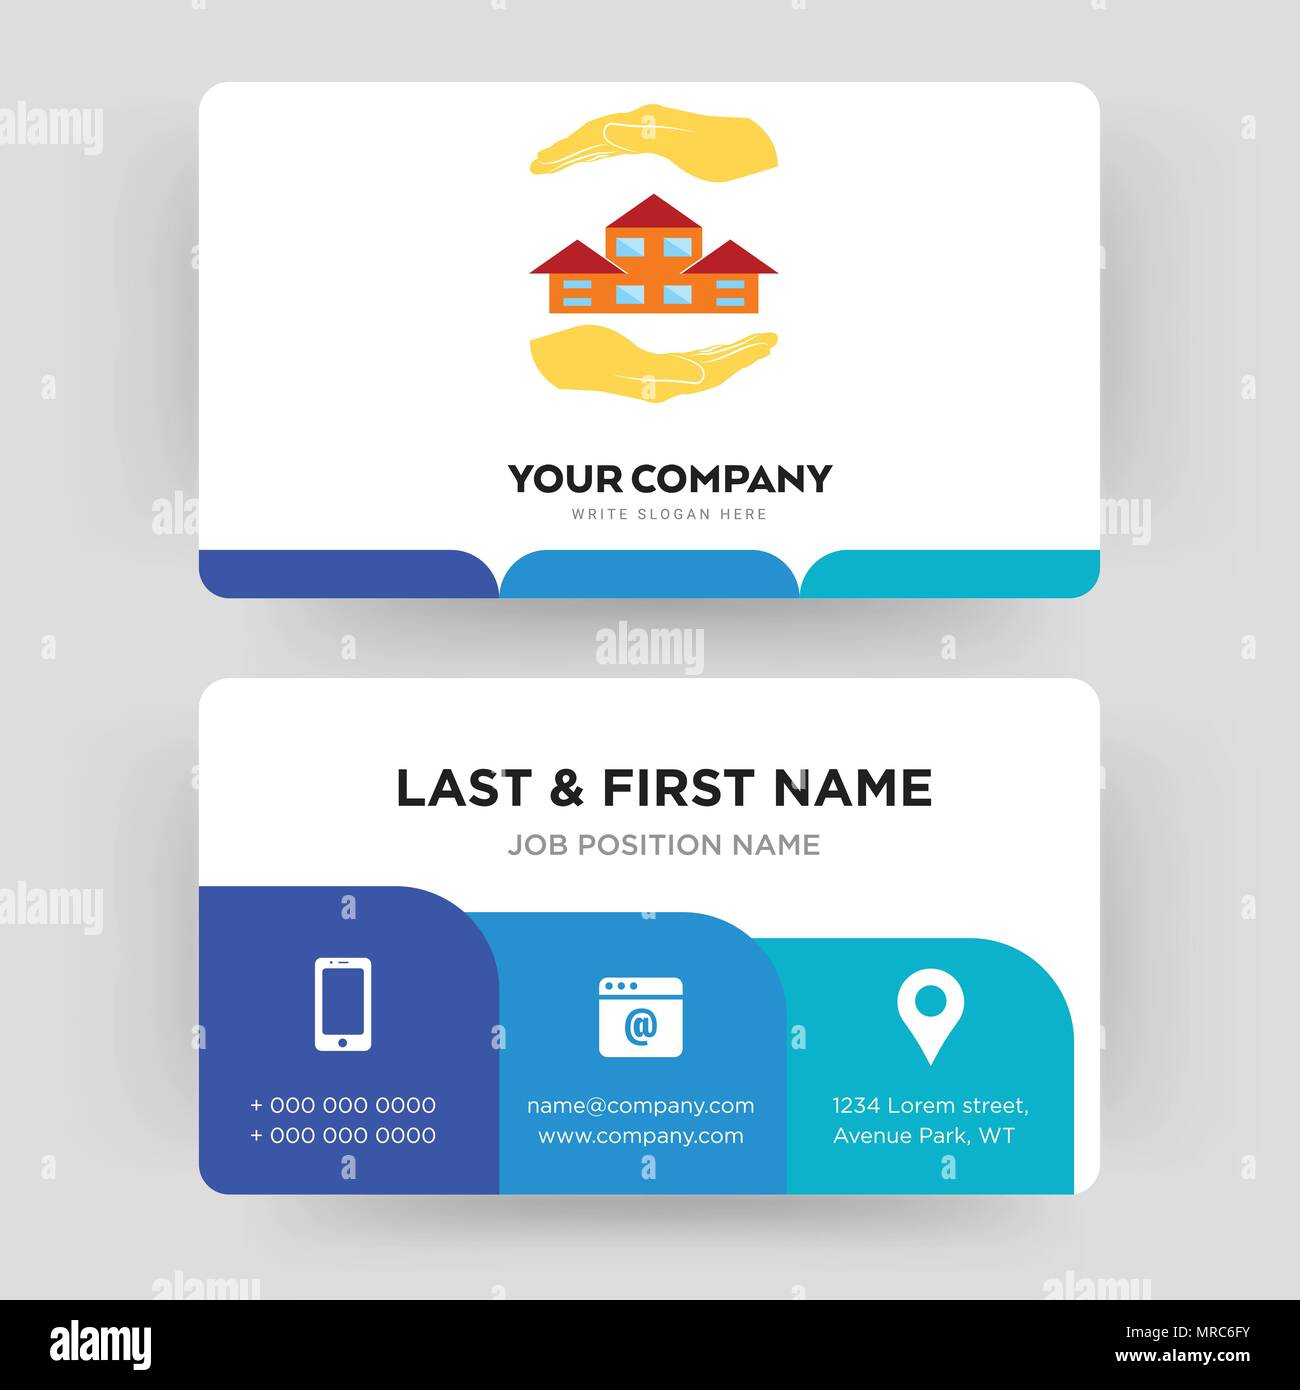 Realtor business card design template visiting for your company realtor business card design template visiting for your company modern creative and clean identity card vector colourmoves